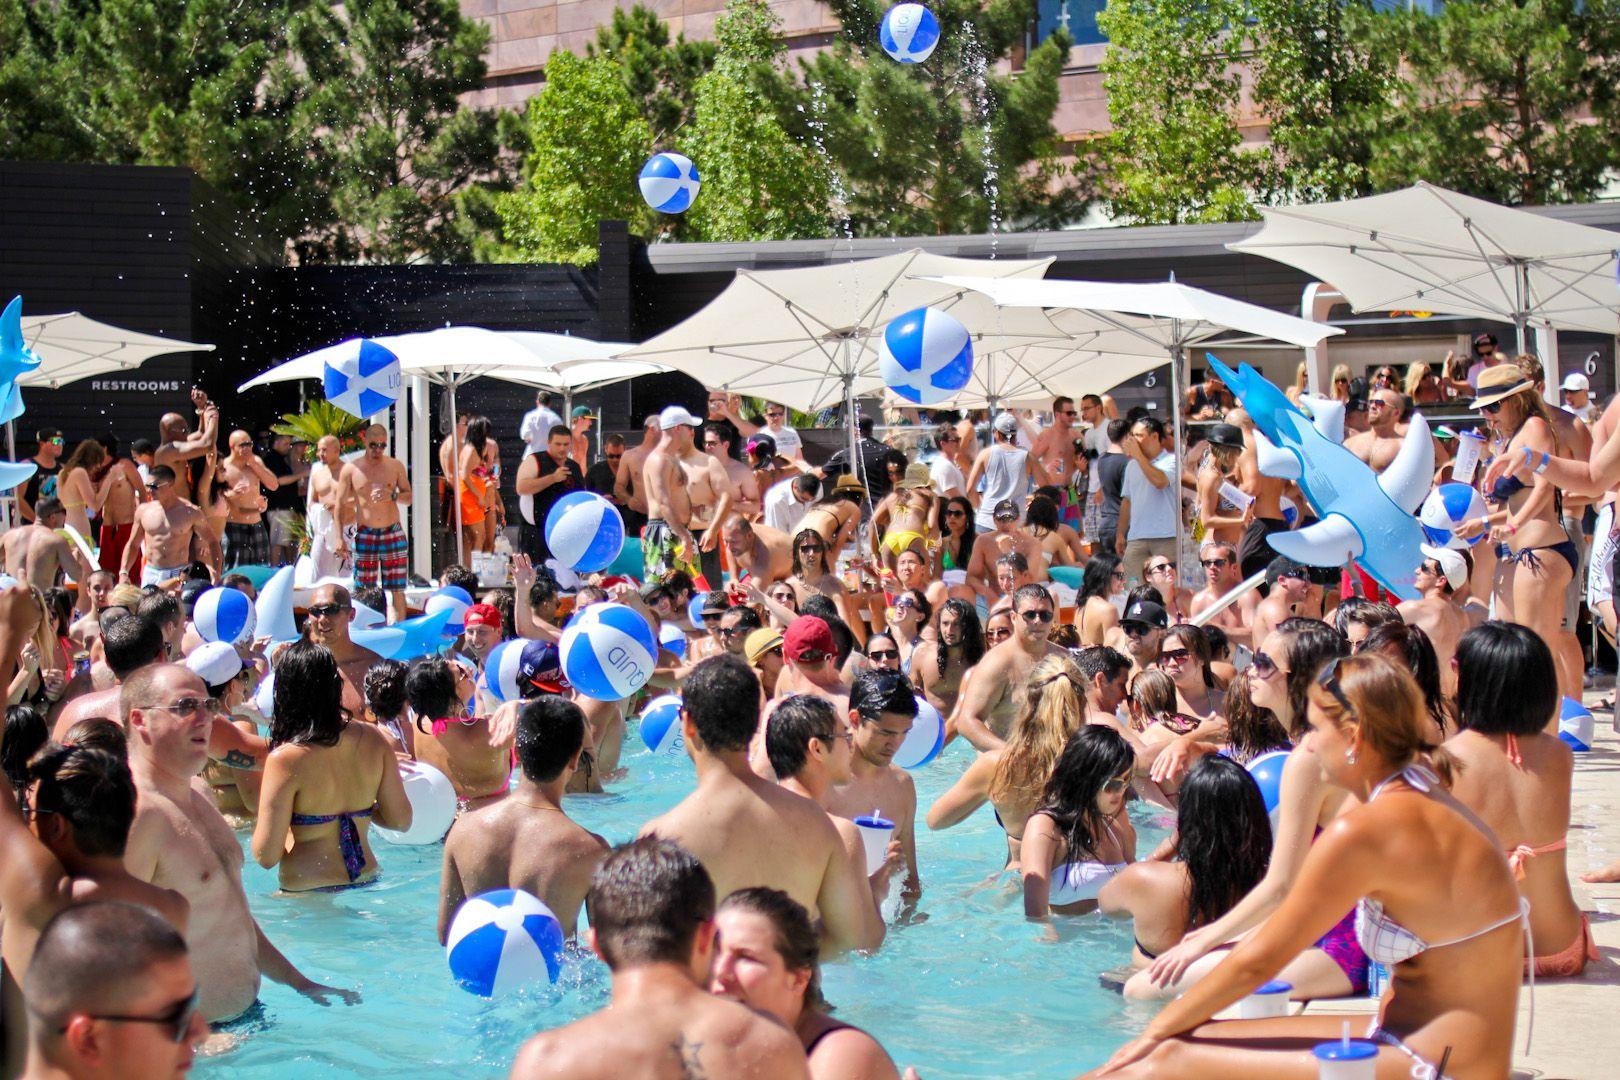 Welcome to Hang out on Holiday | Pool party, Famous djs, Day club